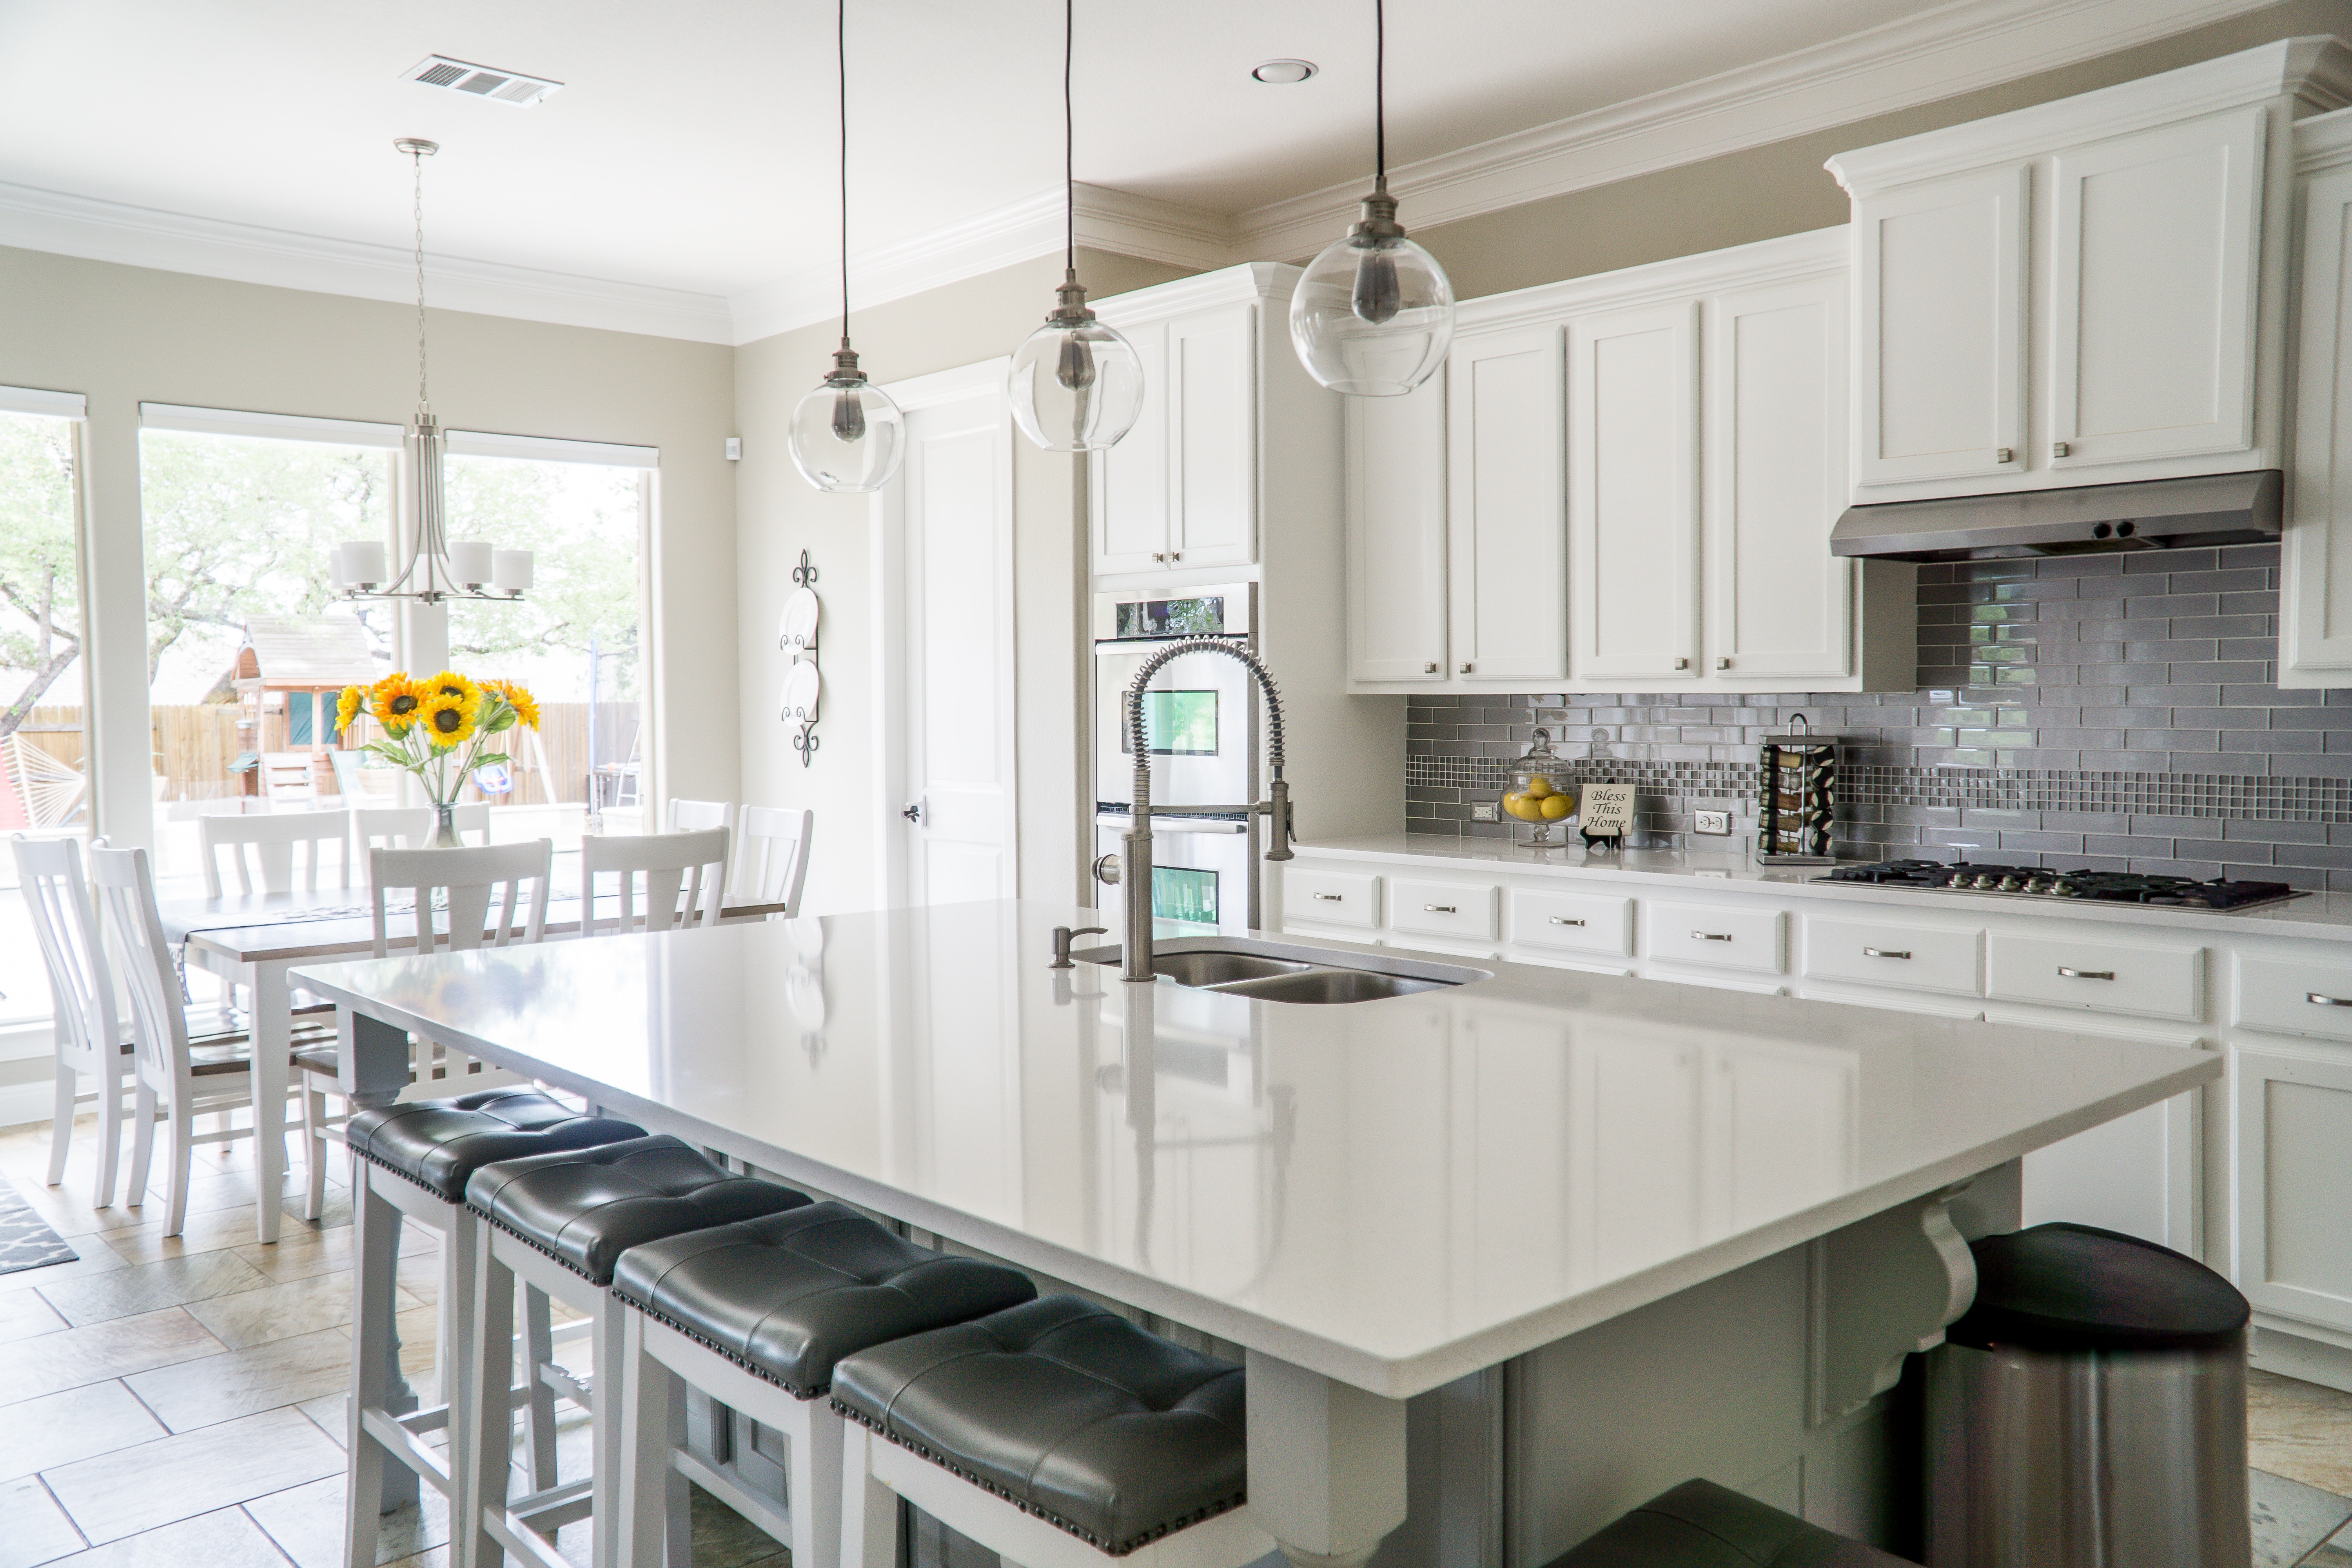 FOUR WAYS TO BRING YOUR DREAM KITCHEN TO LIFE